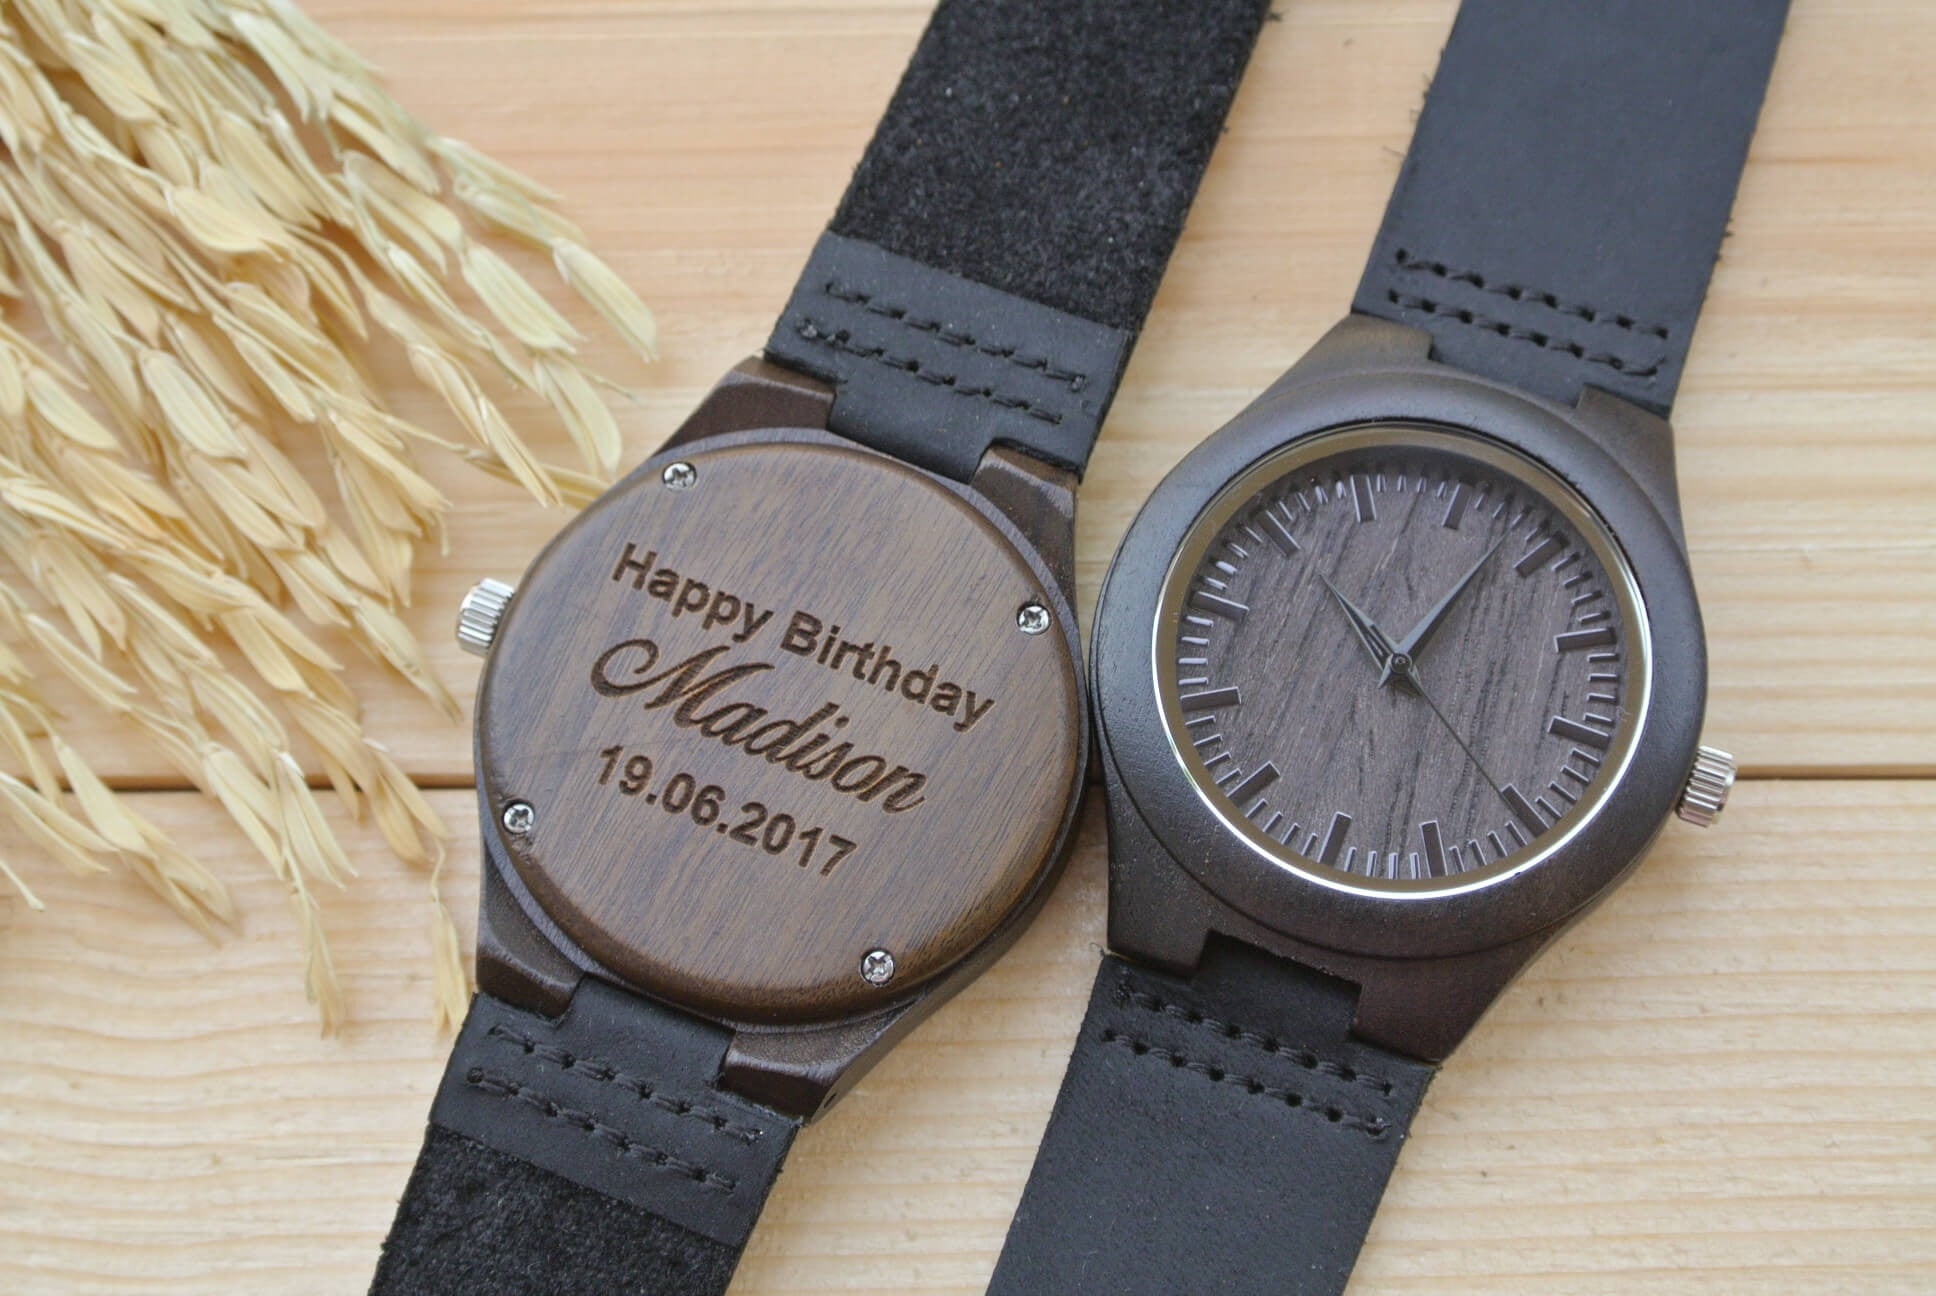 Watch Engraving Ideas For Husband On Wedding Day Personalize The